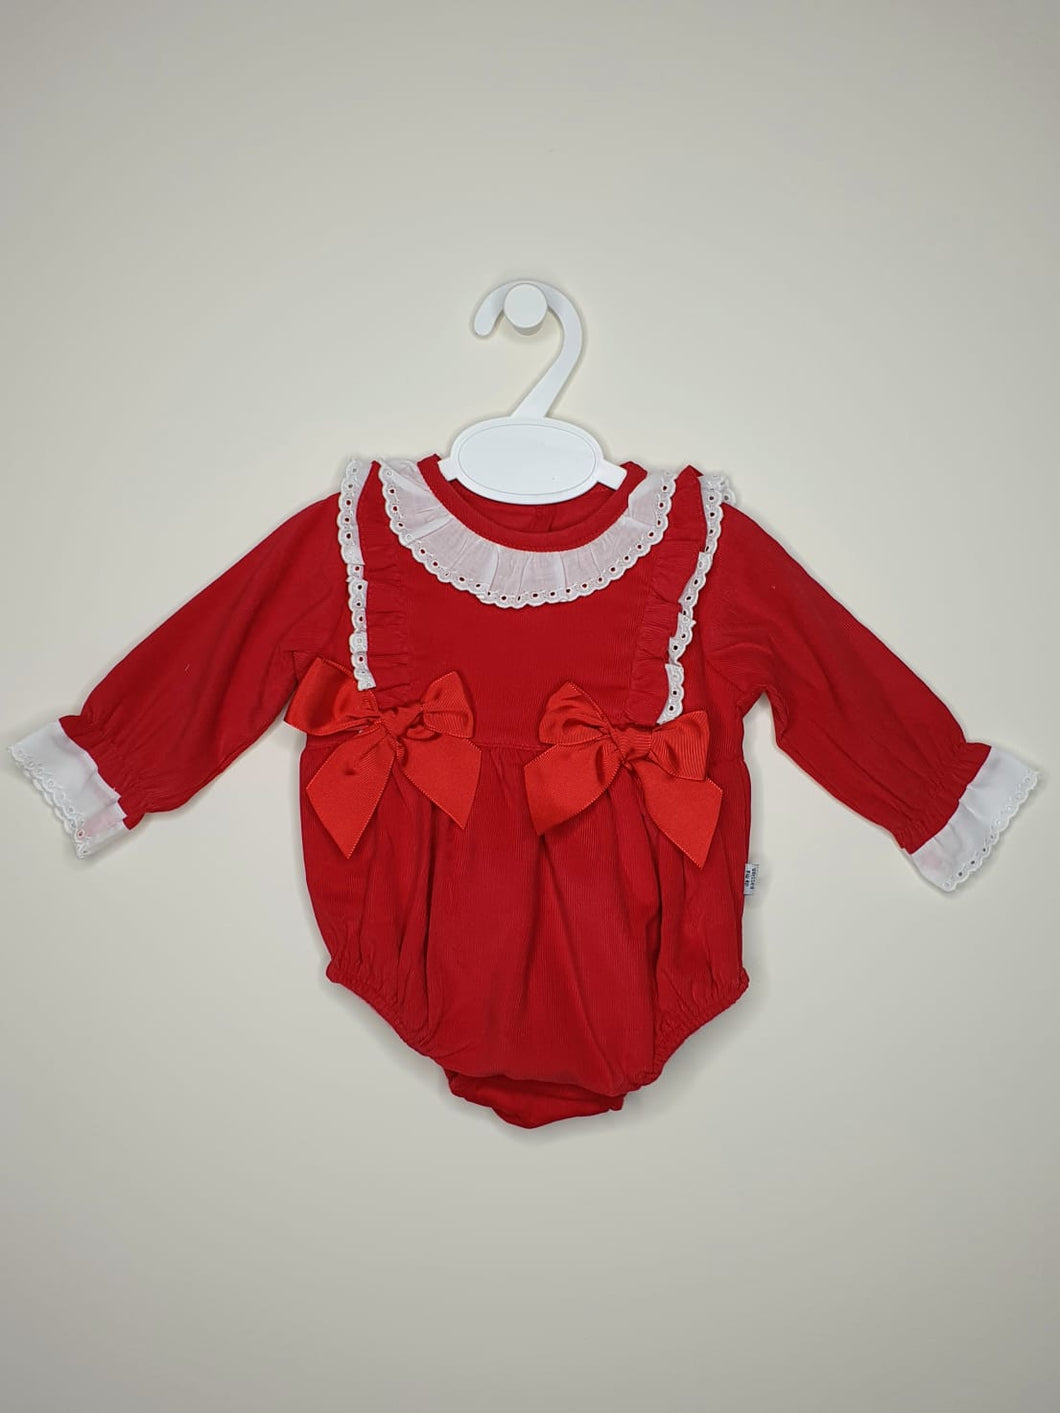 Portuguese Girls Romper With Ribbon And Lace